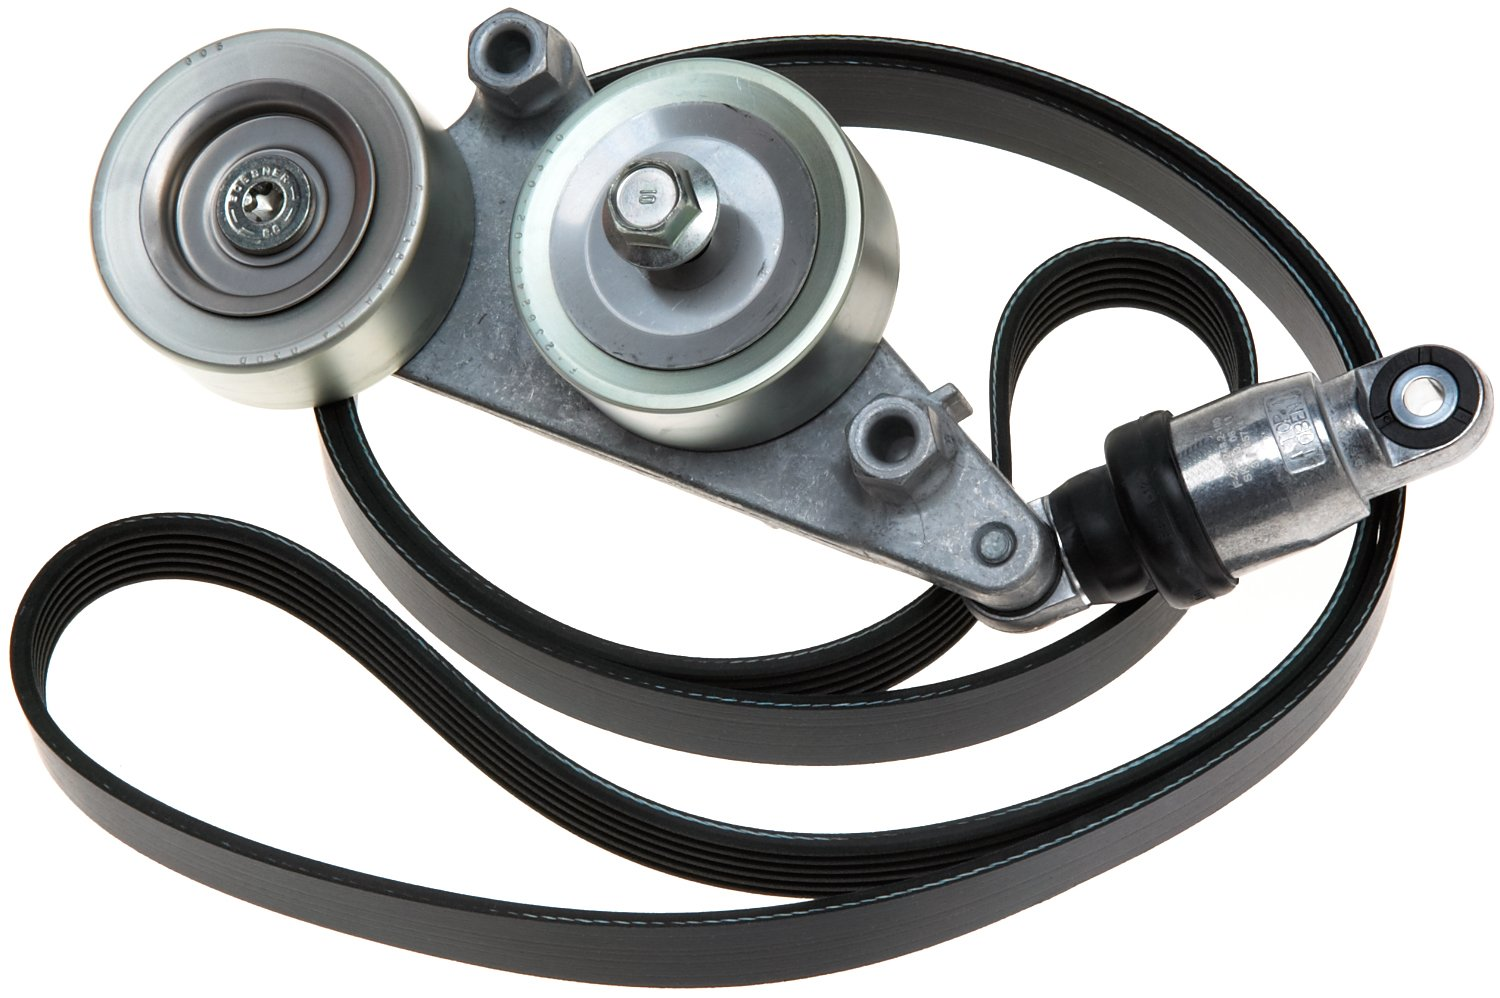 ACDelco ACK060841K1 Professional Accessory Belt Drive System Tensioner Kit by ACDelco